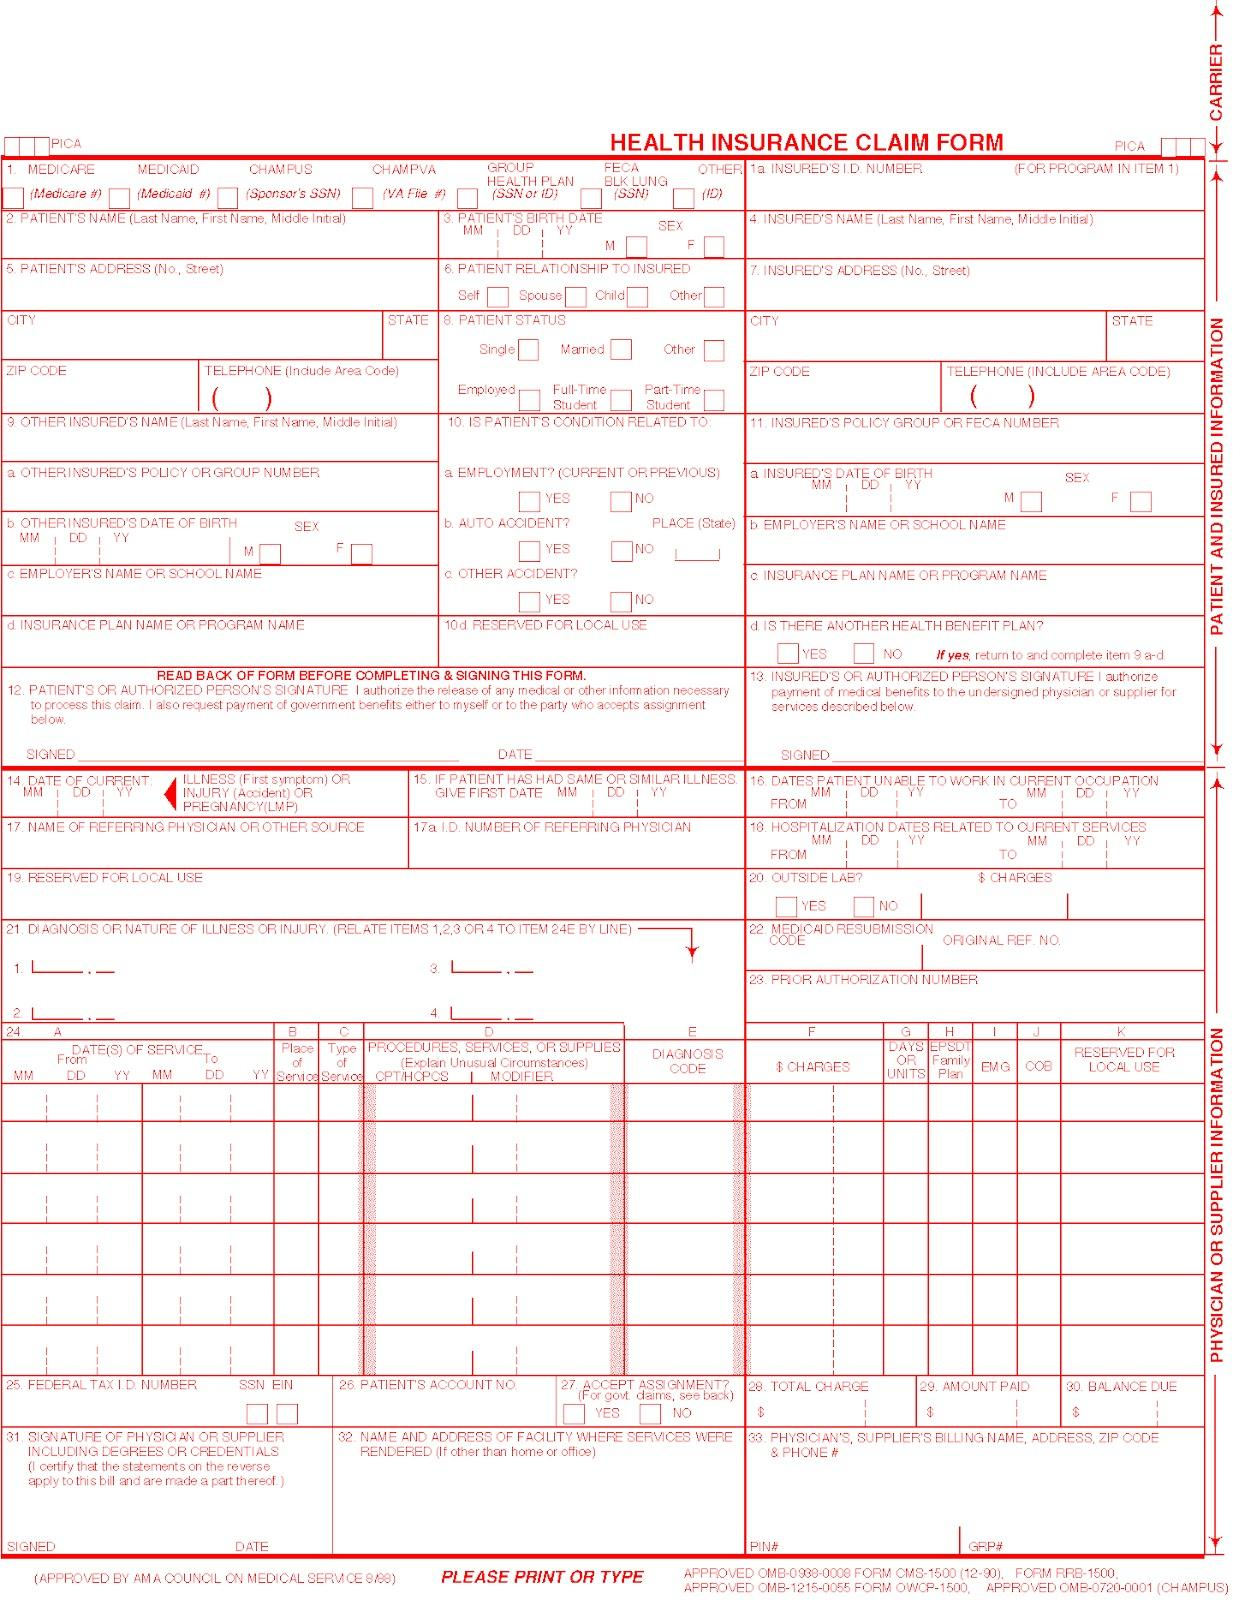 Hcfa 1500 Form Download Pdf